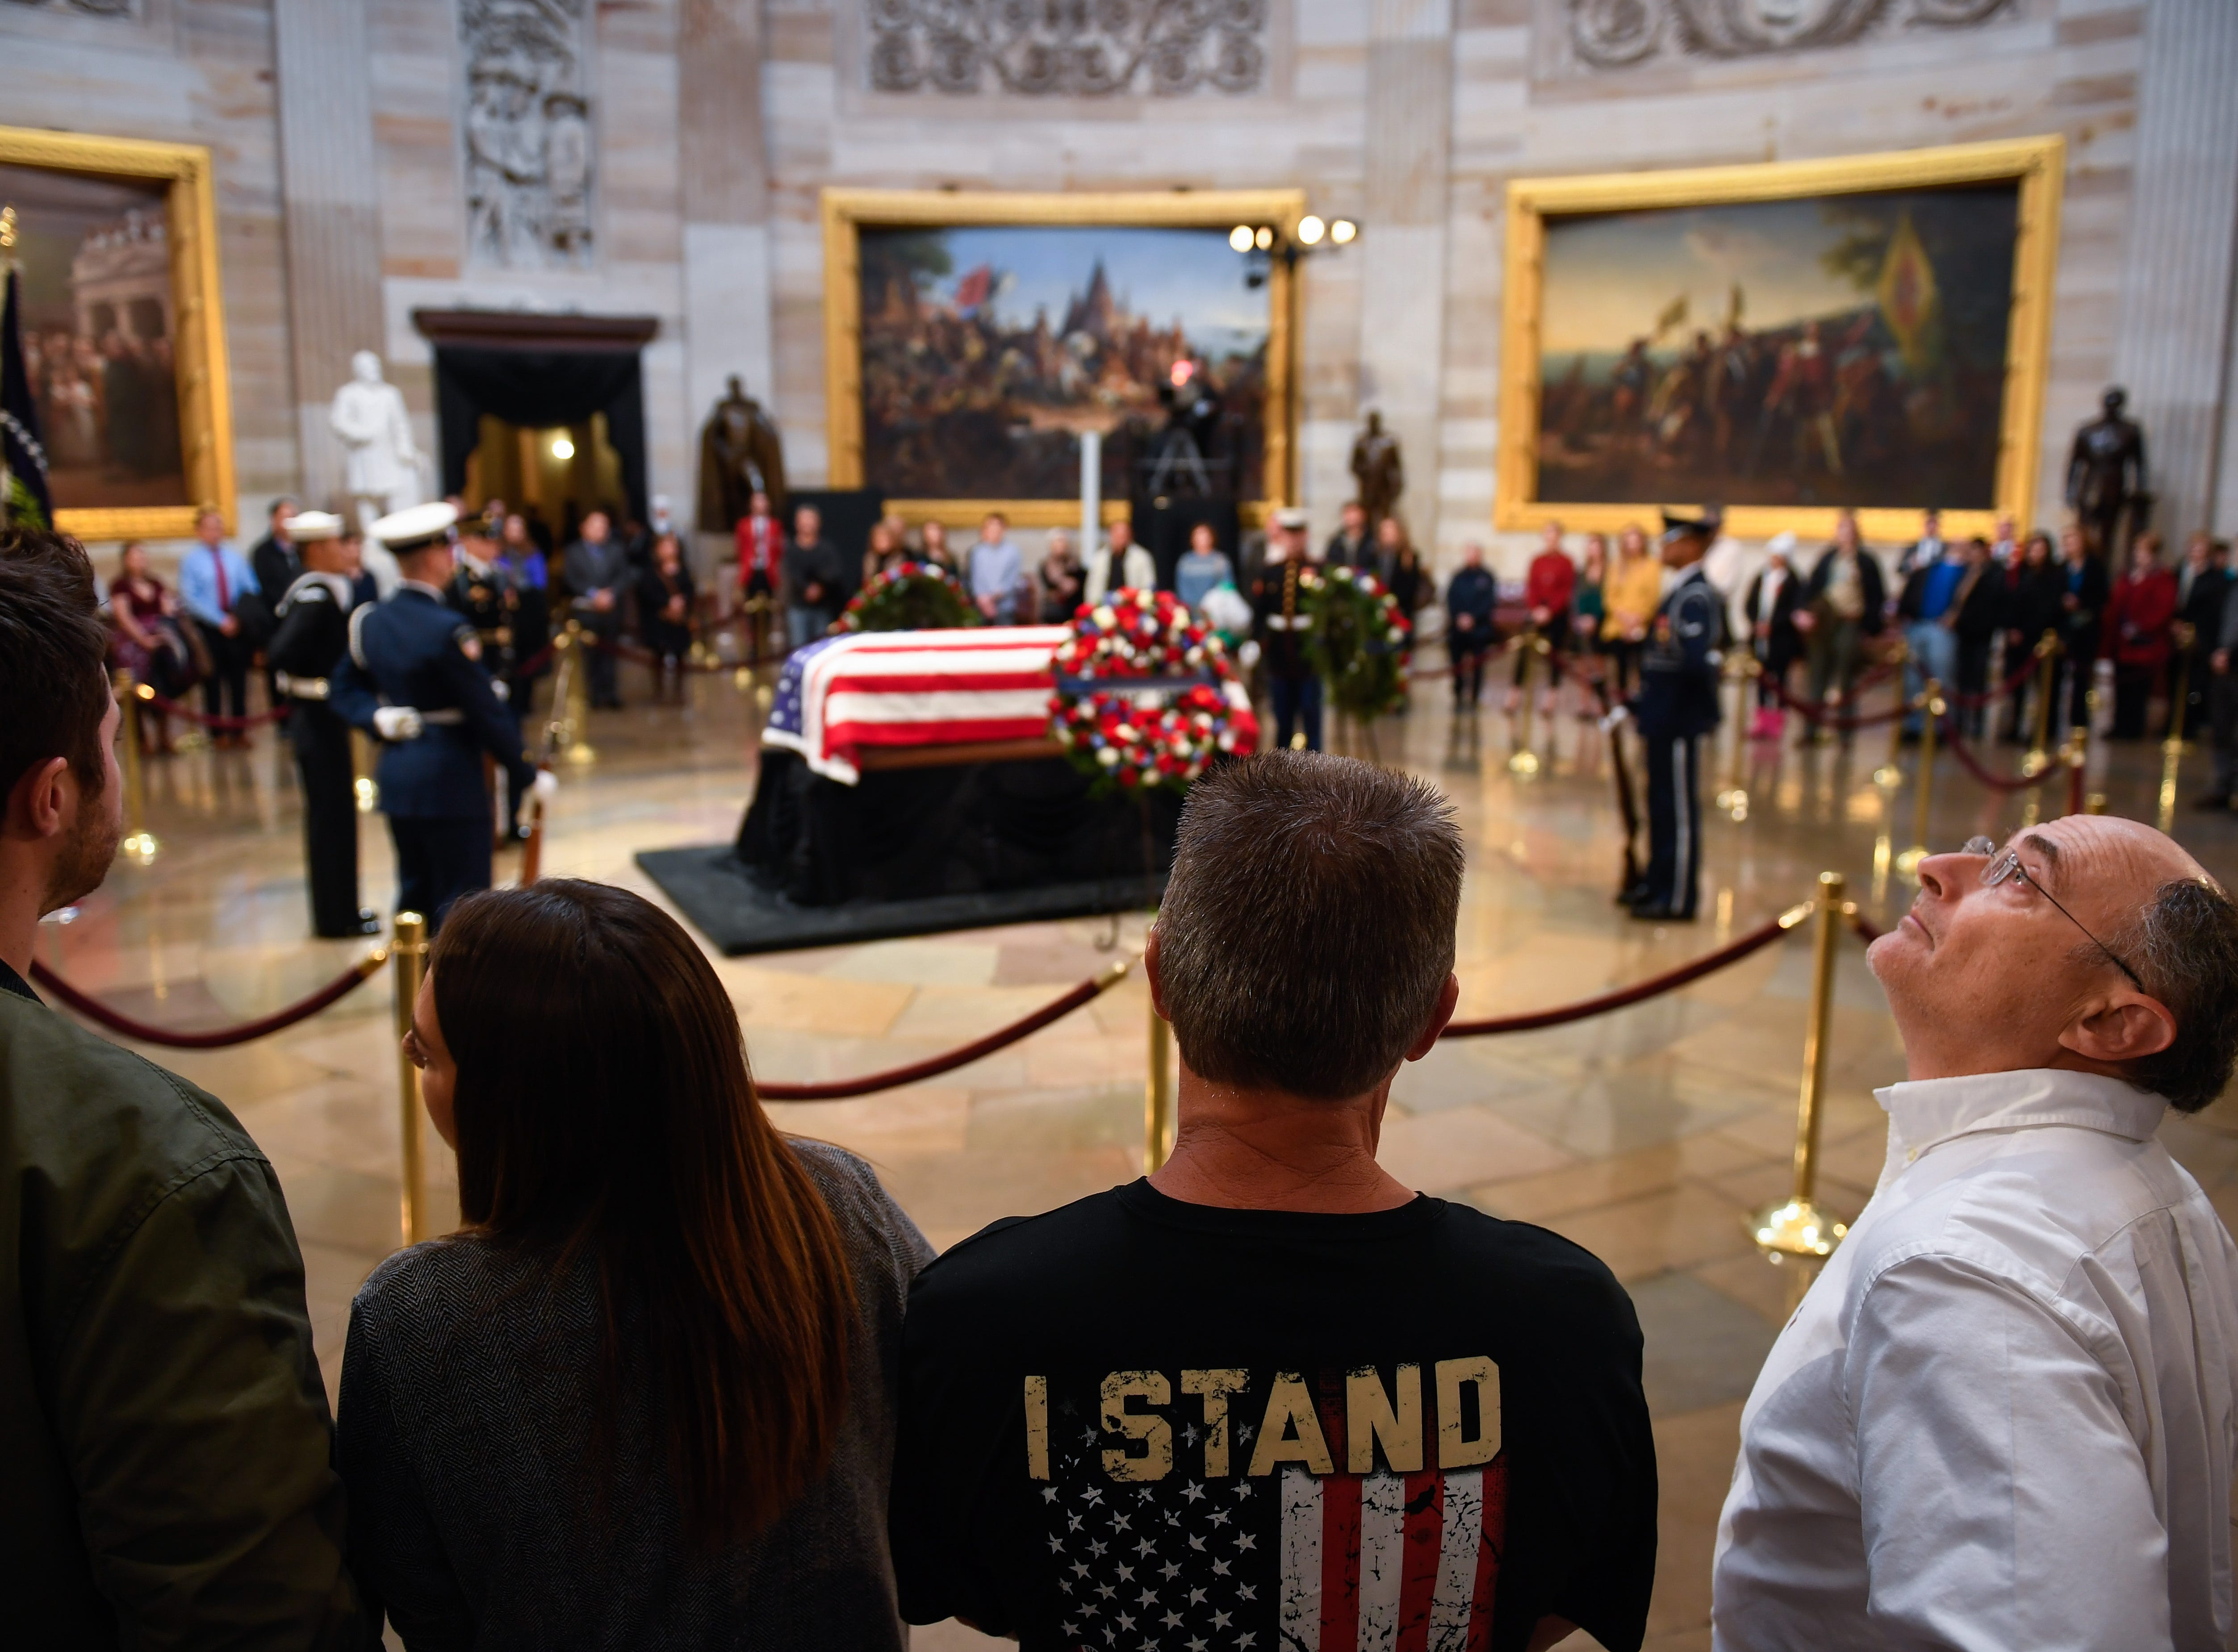 Visitors take in the scene at the the Capitol Rotunda and pay respects to President George H.W. Bush as he lies in state, Tuesday.